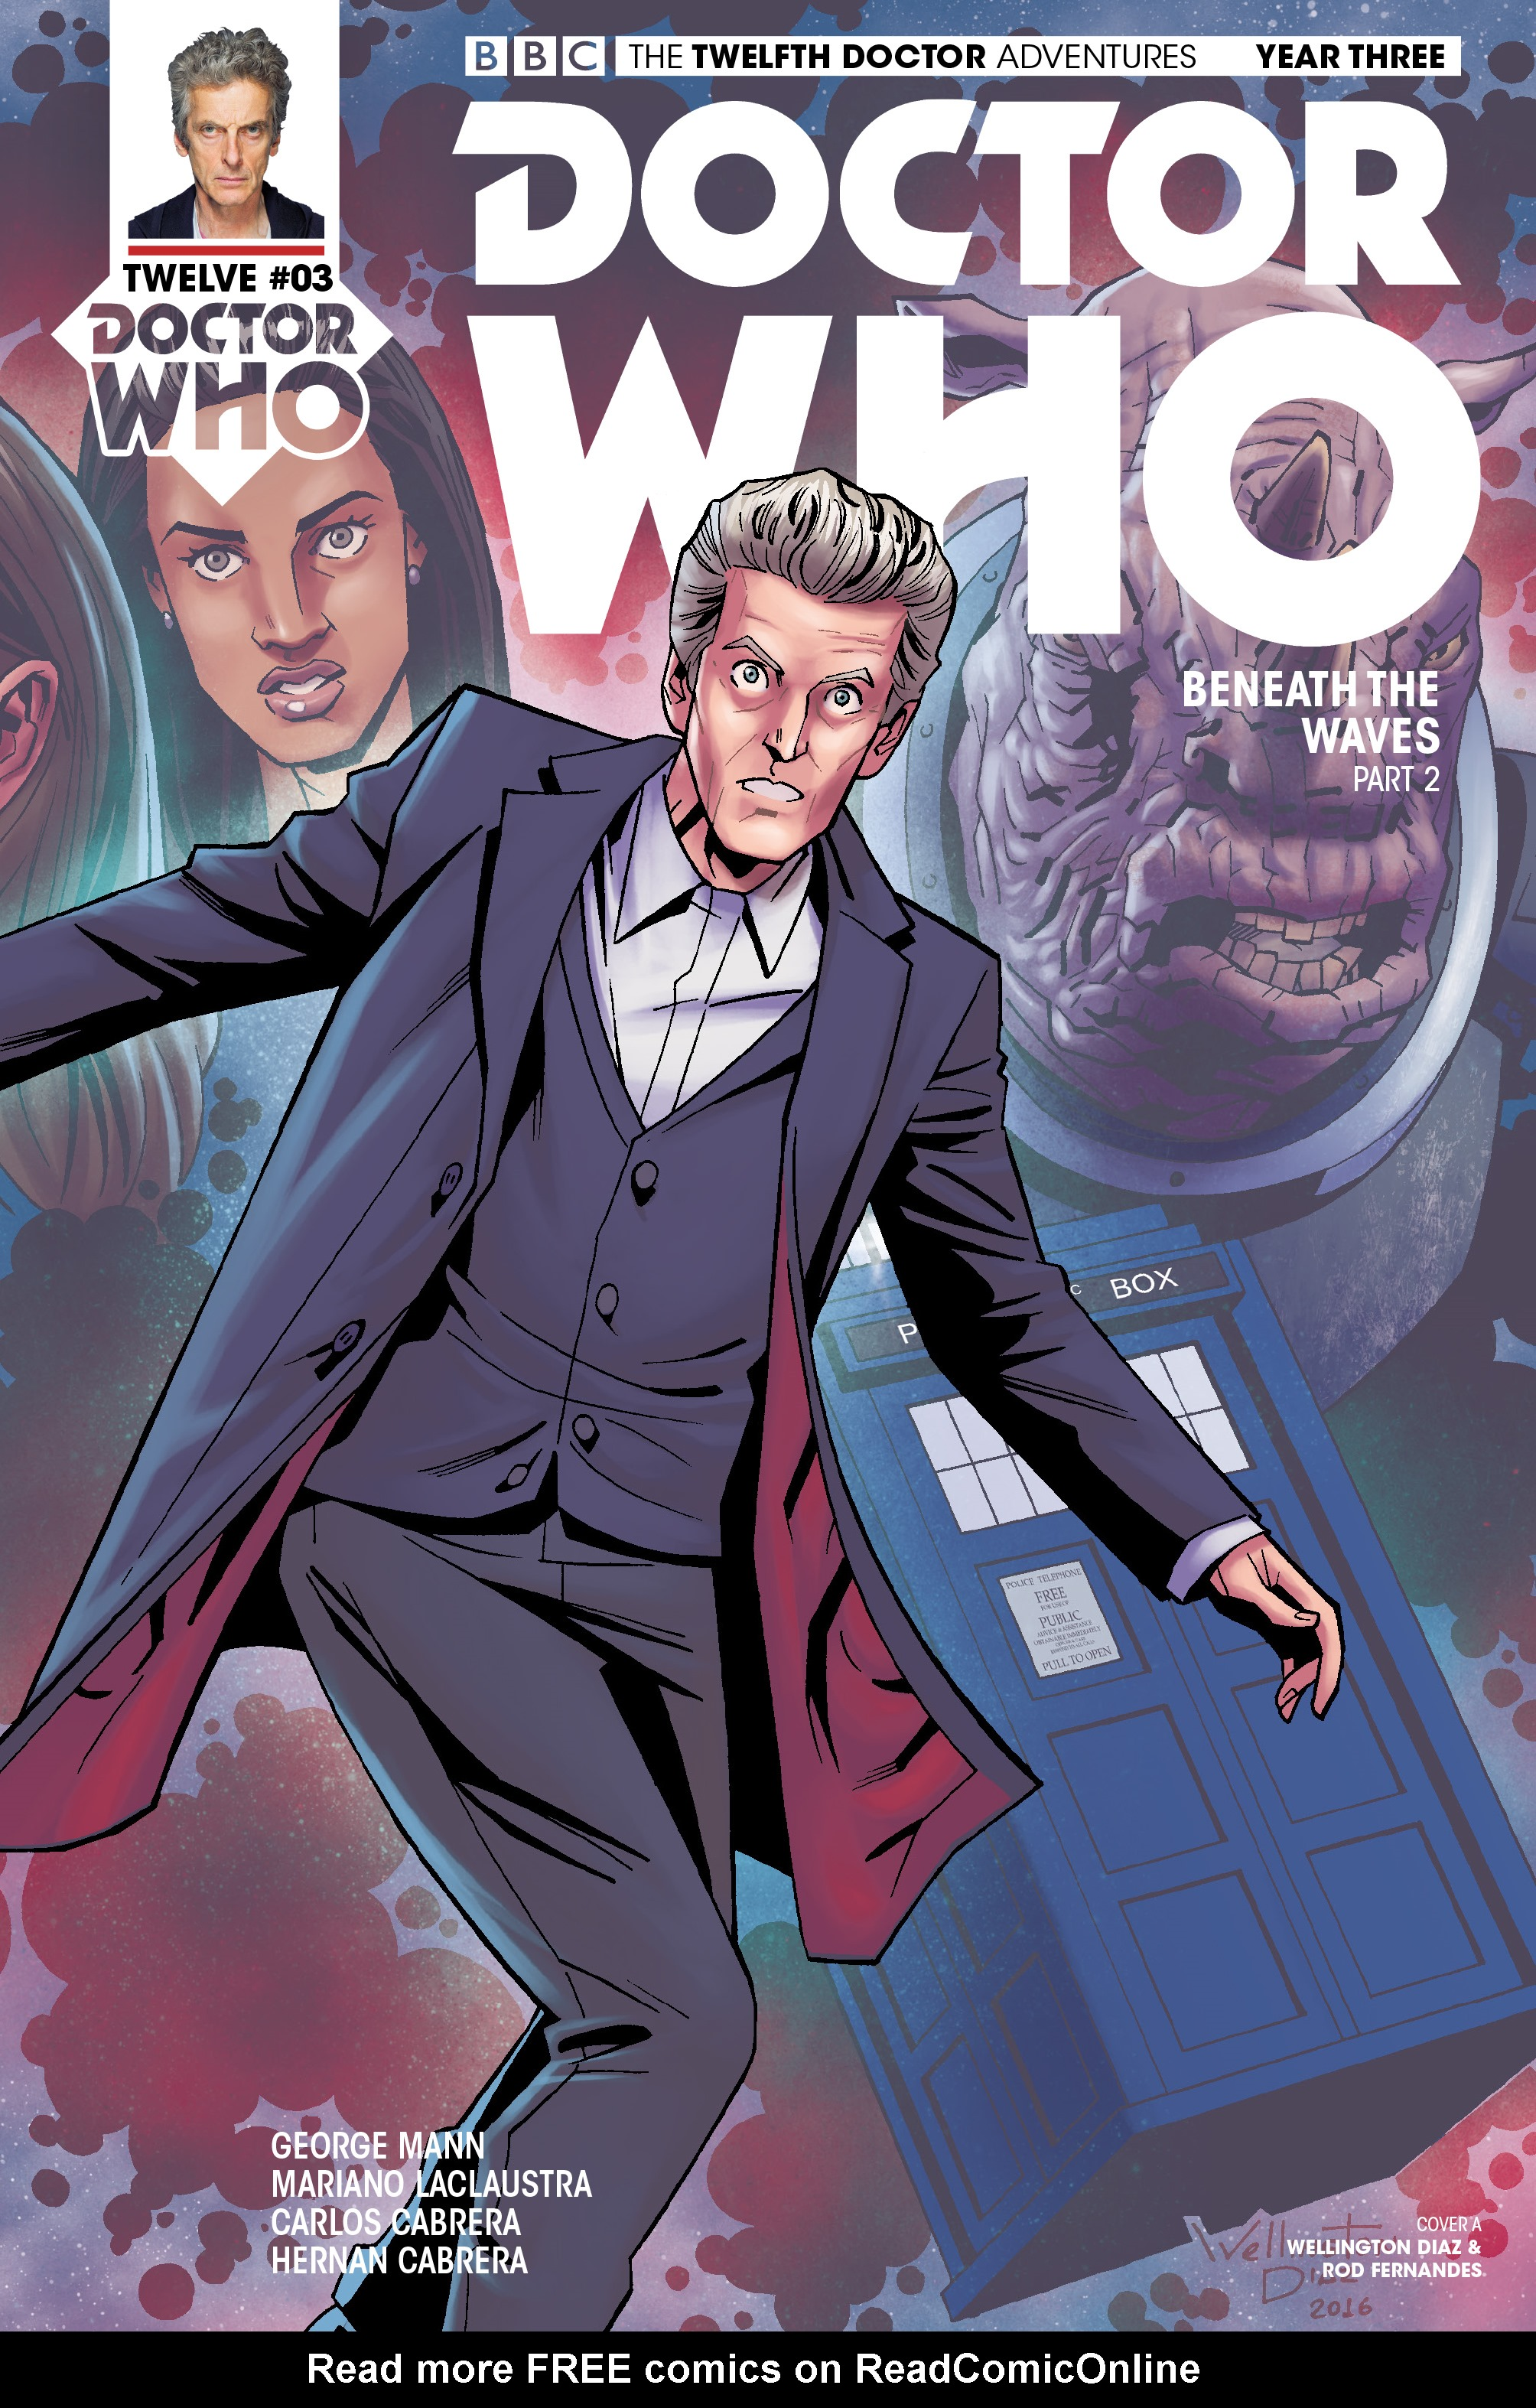 Read online Doctor Who: The Twelfth Doctor Year Three comic -  Issue #3 - 1